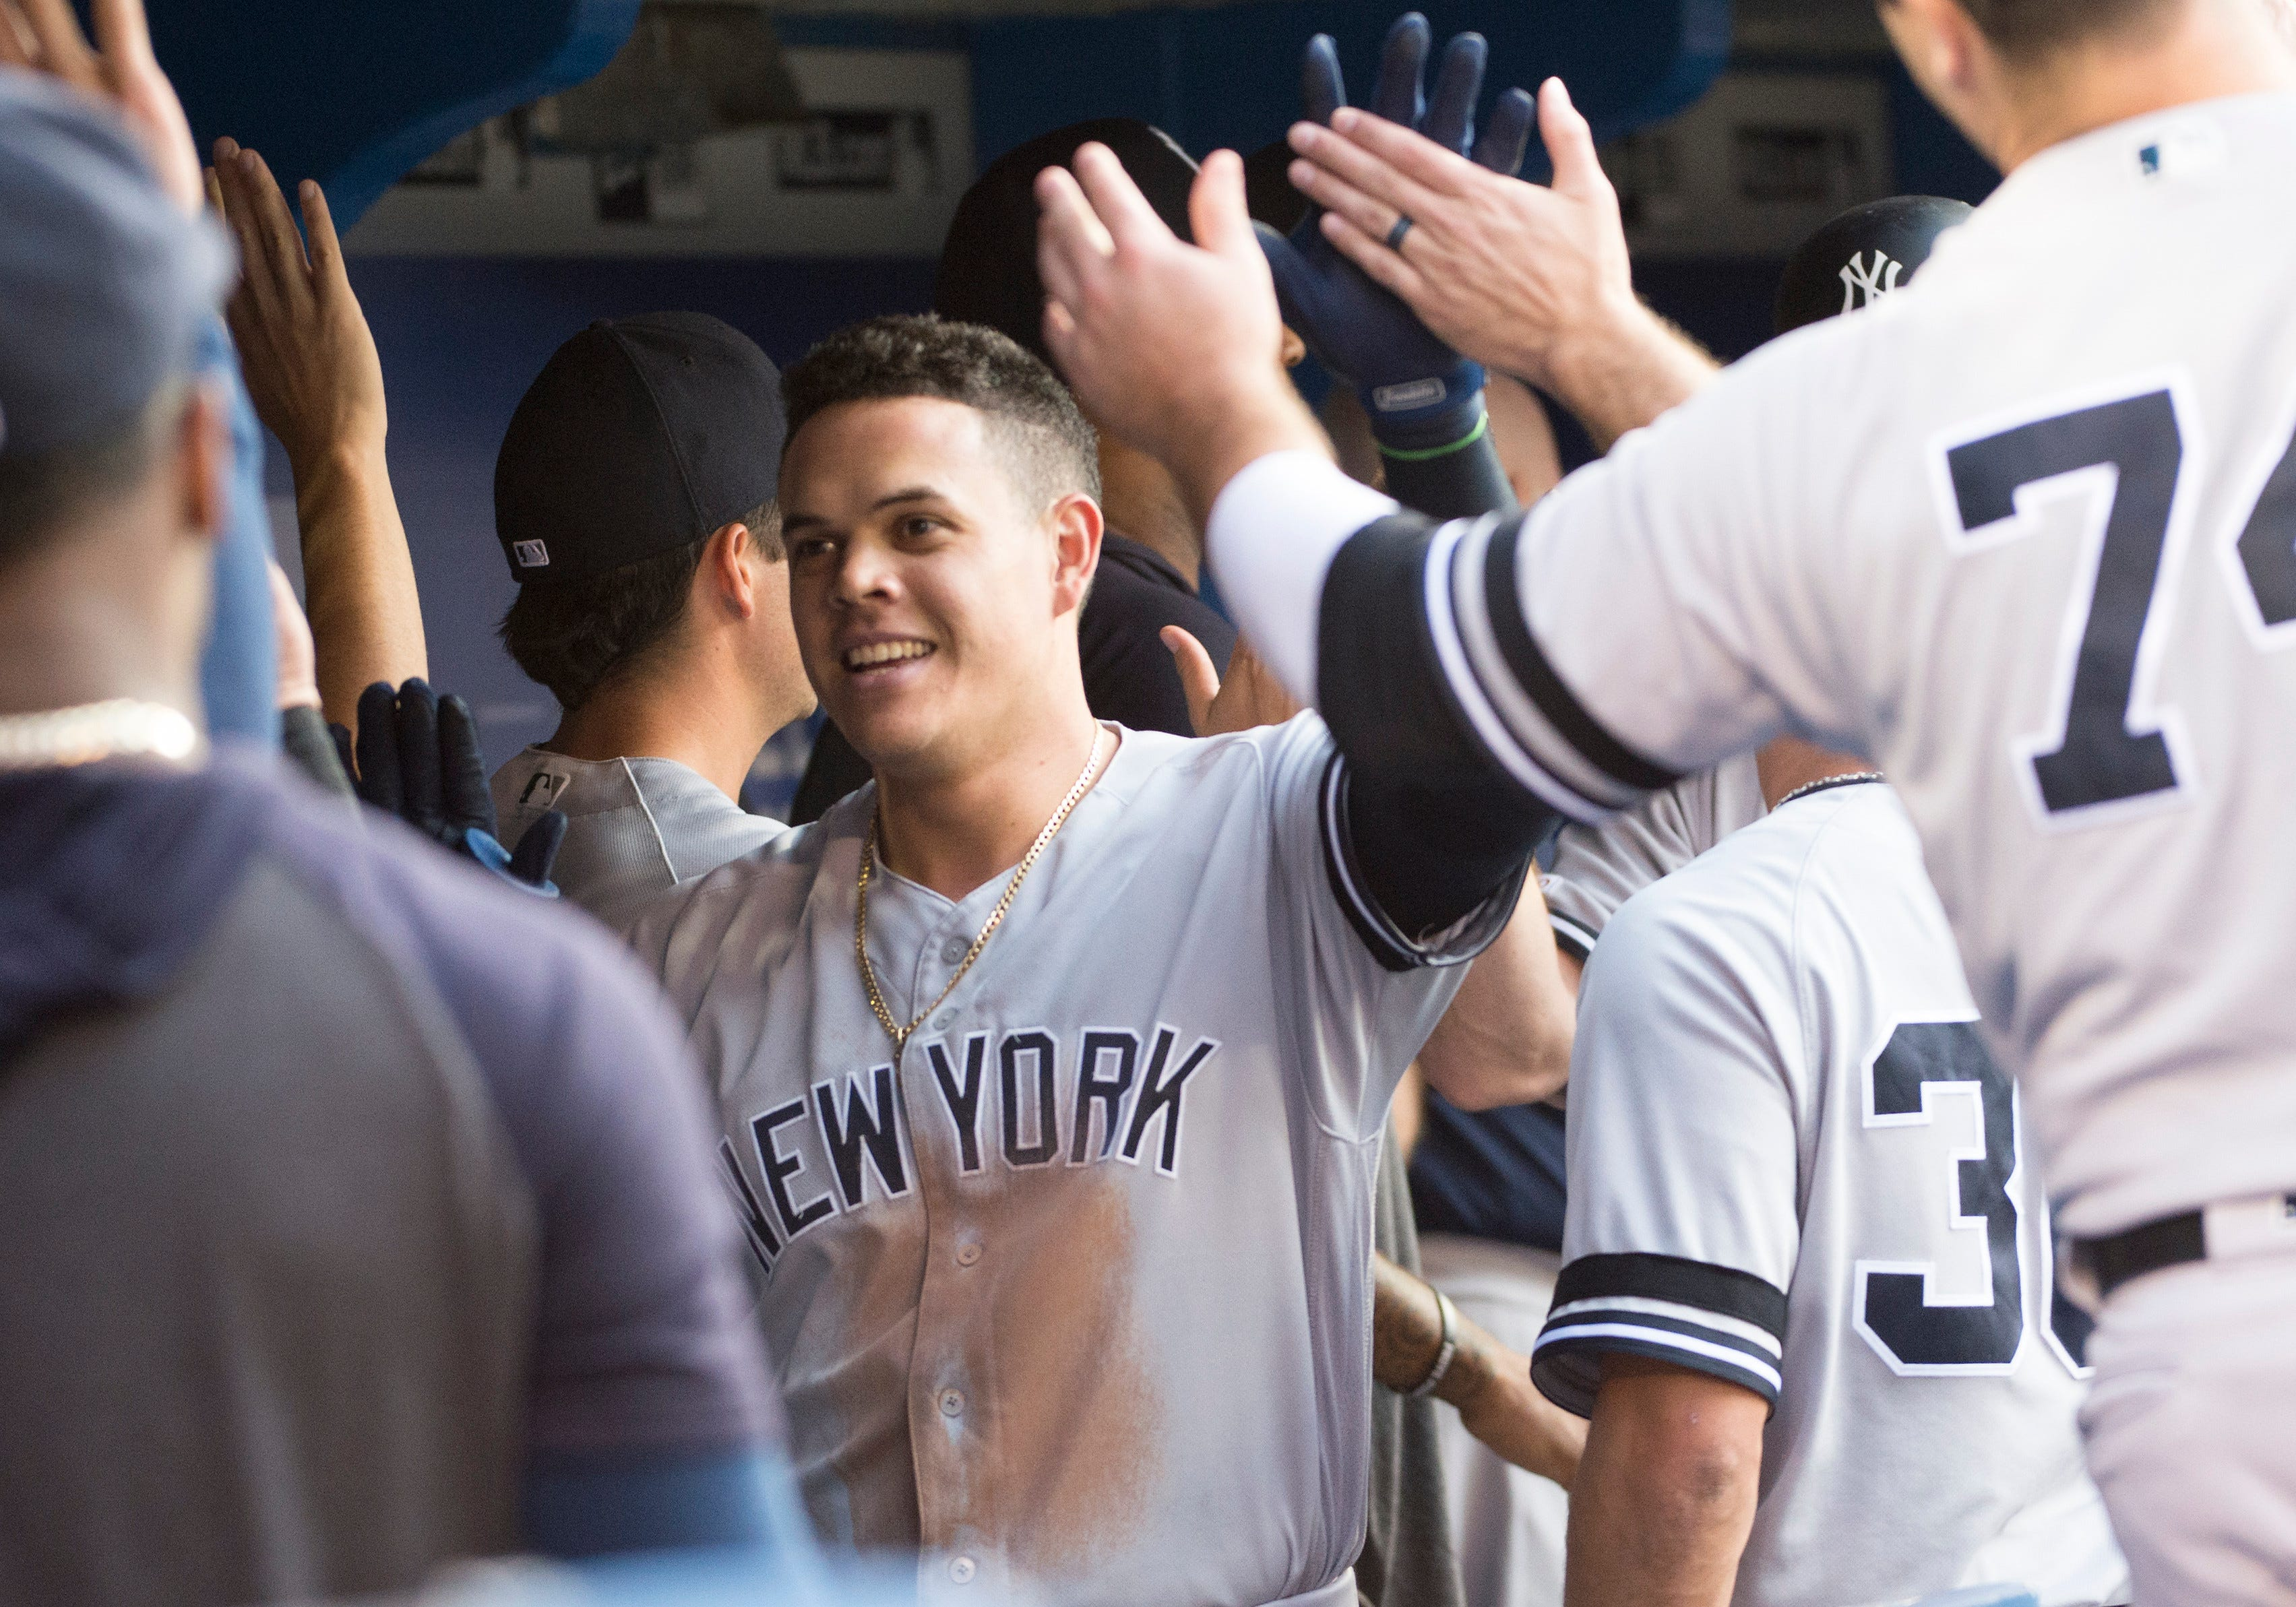 graphic regarding New York Yankees Printable Schedule named Refreshing York Yankees 2020 agenda produced: Listed here are the highlights